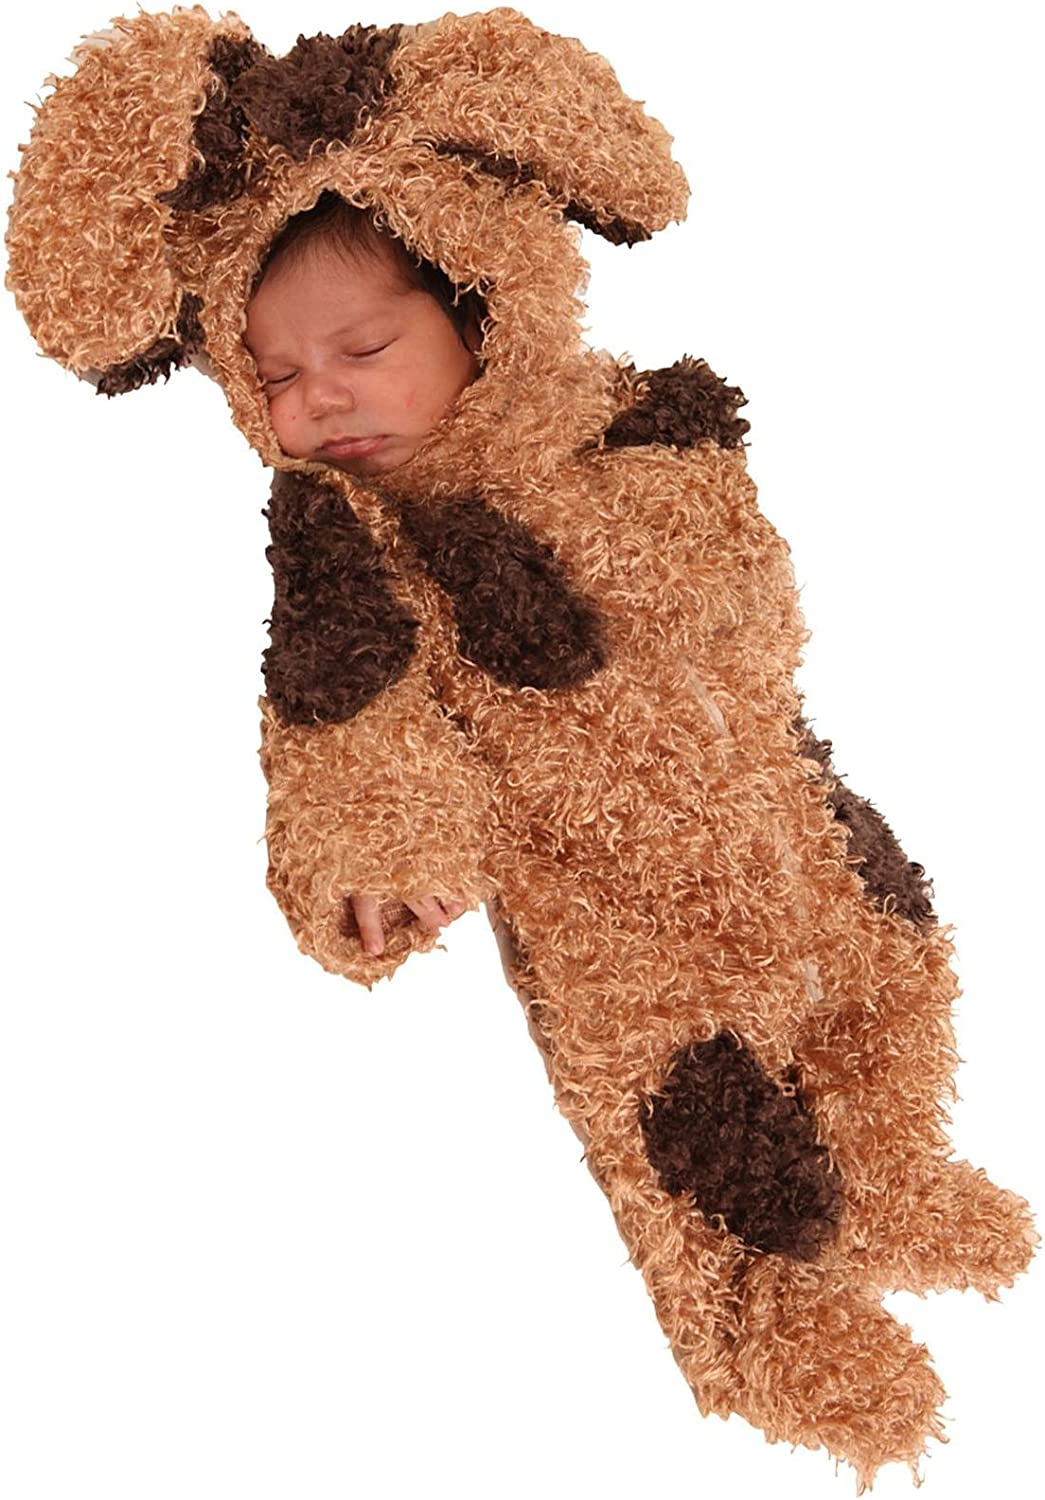 Bently The Puppy Deluxe Infant Costume 3 6M